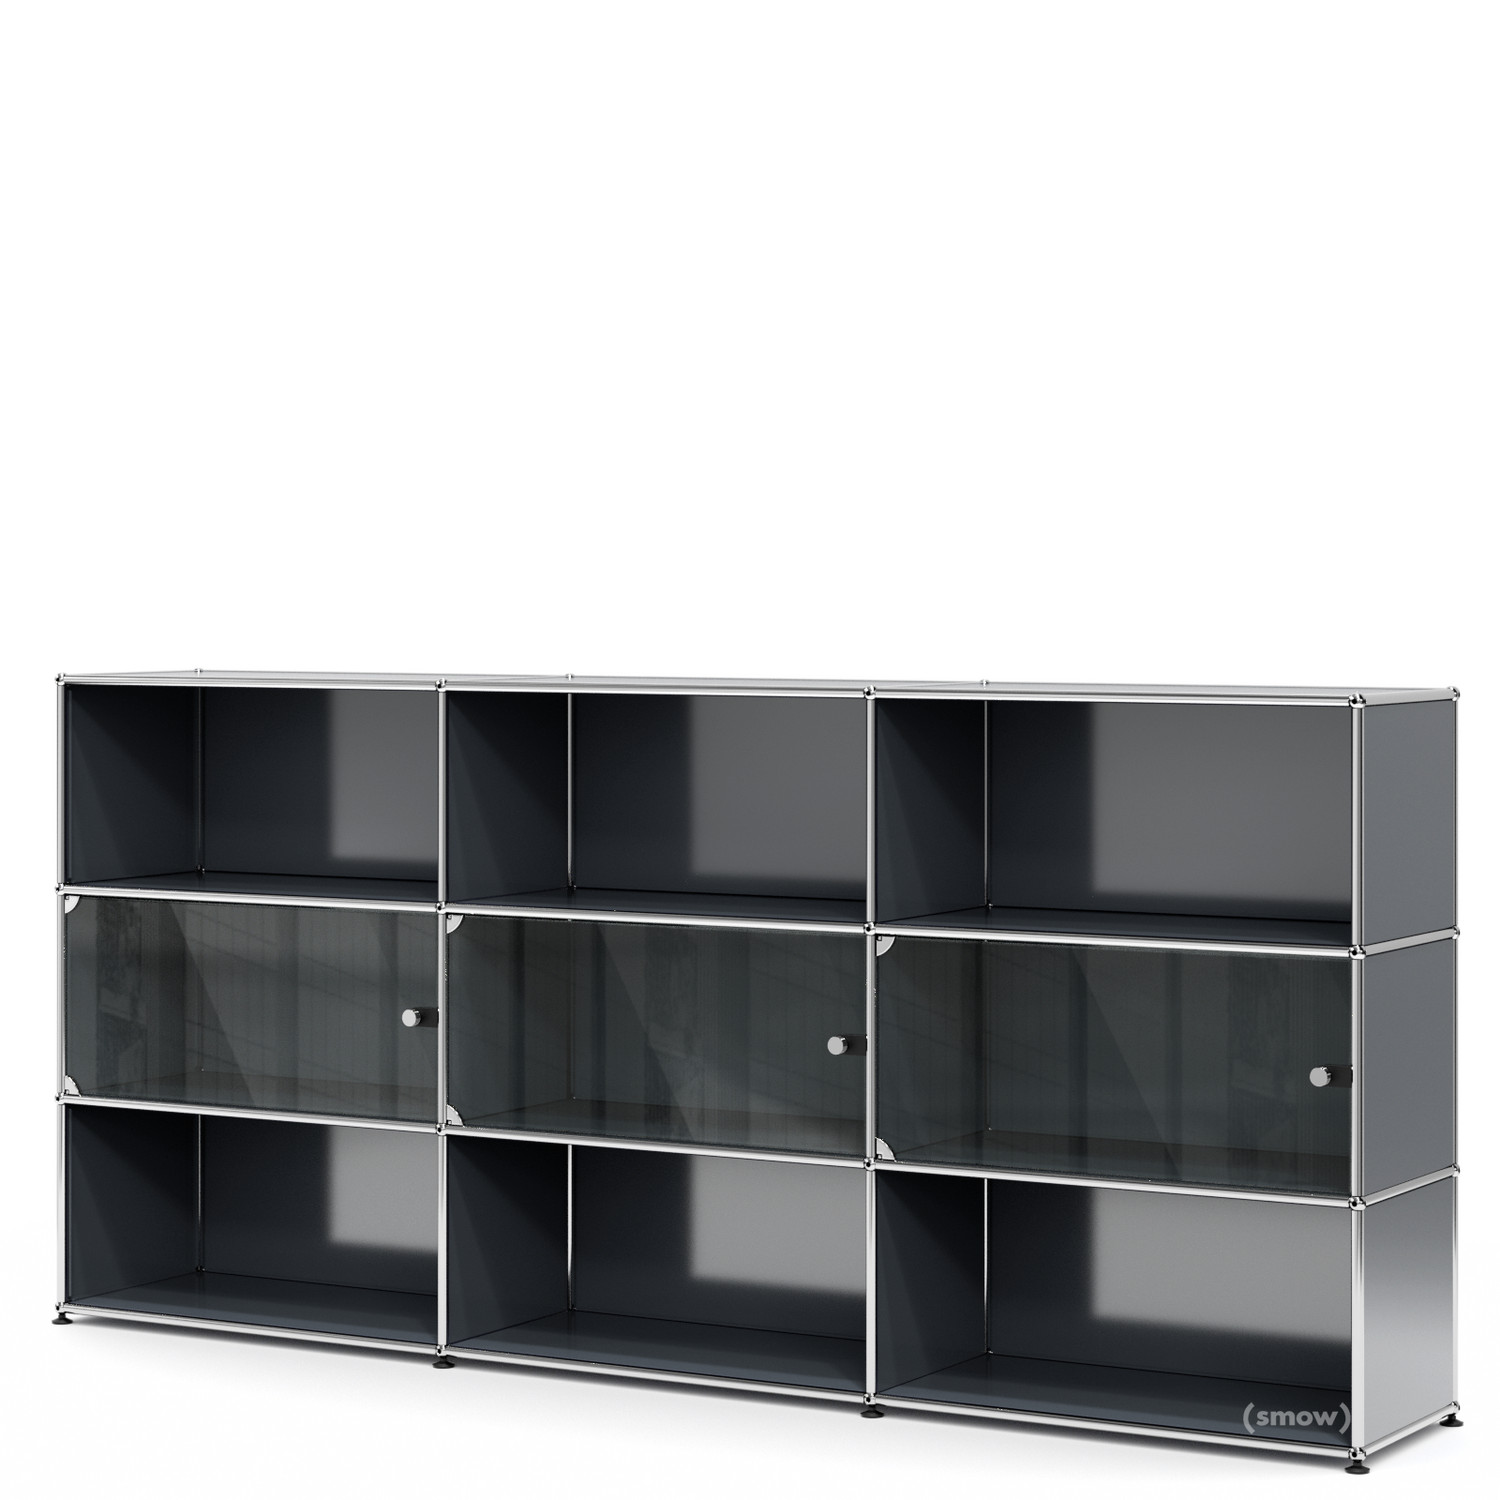 Usm Haller Highboard Xl Mit 3 Glasturen Von Fritz Haller Paul